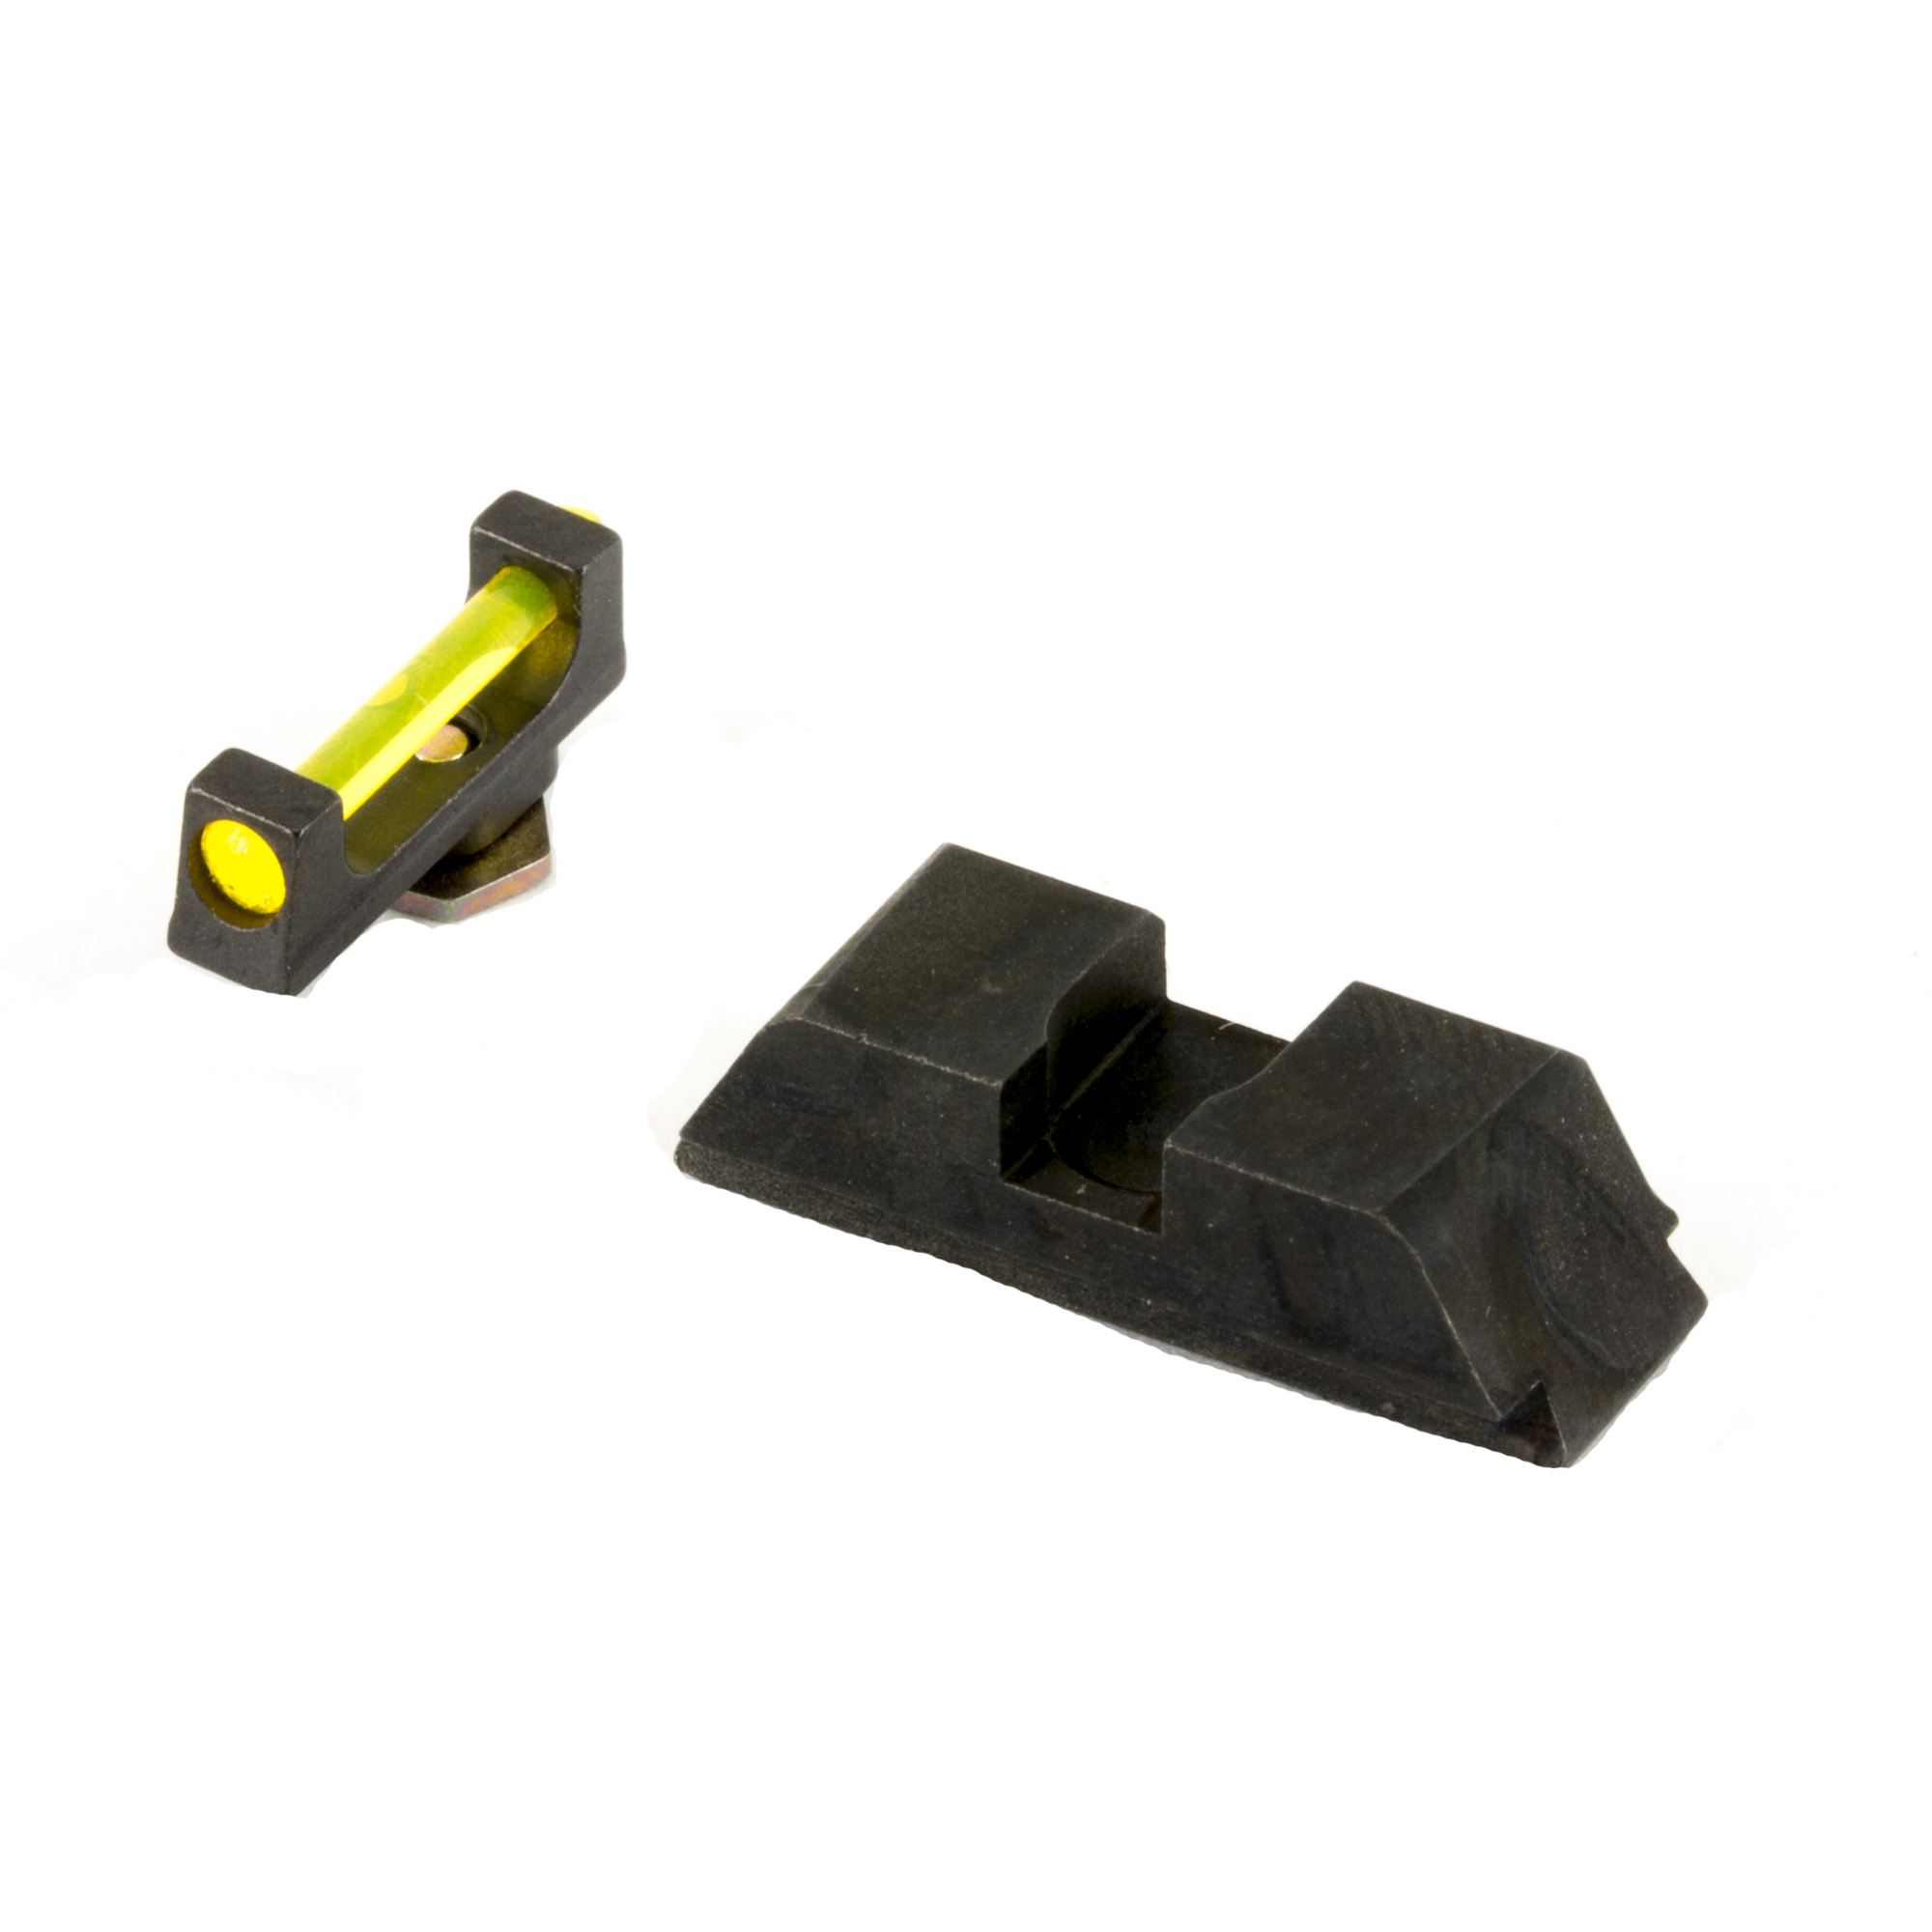 Sight set with fiber front and flat black steel rear for Glocks. Fiber optic elements concentrate ambient light and are ideal for bright environments.